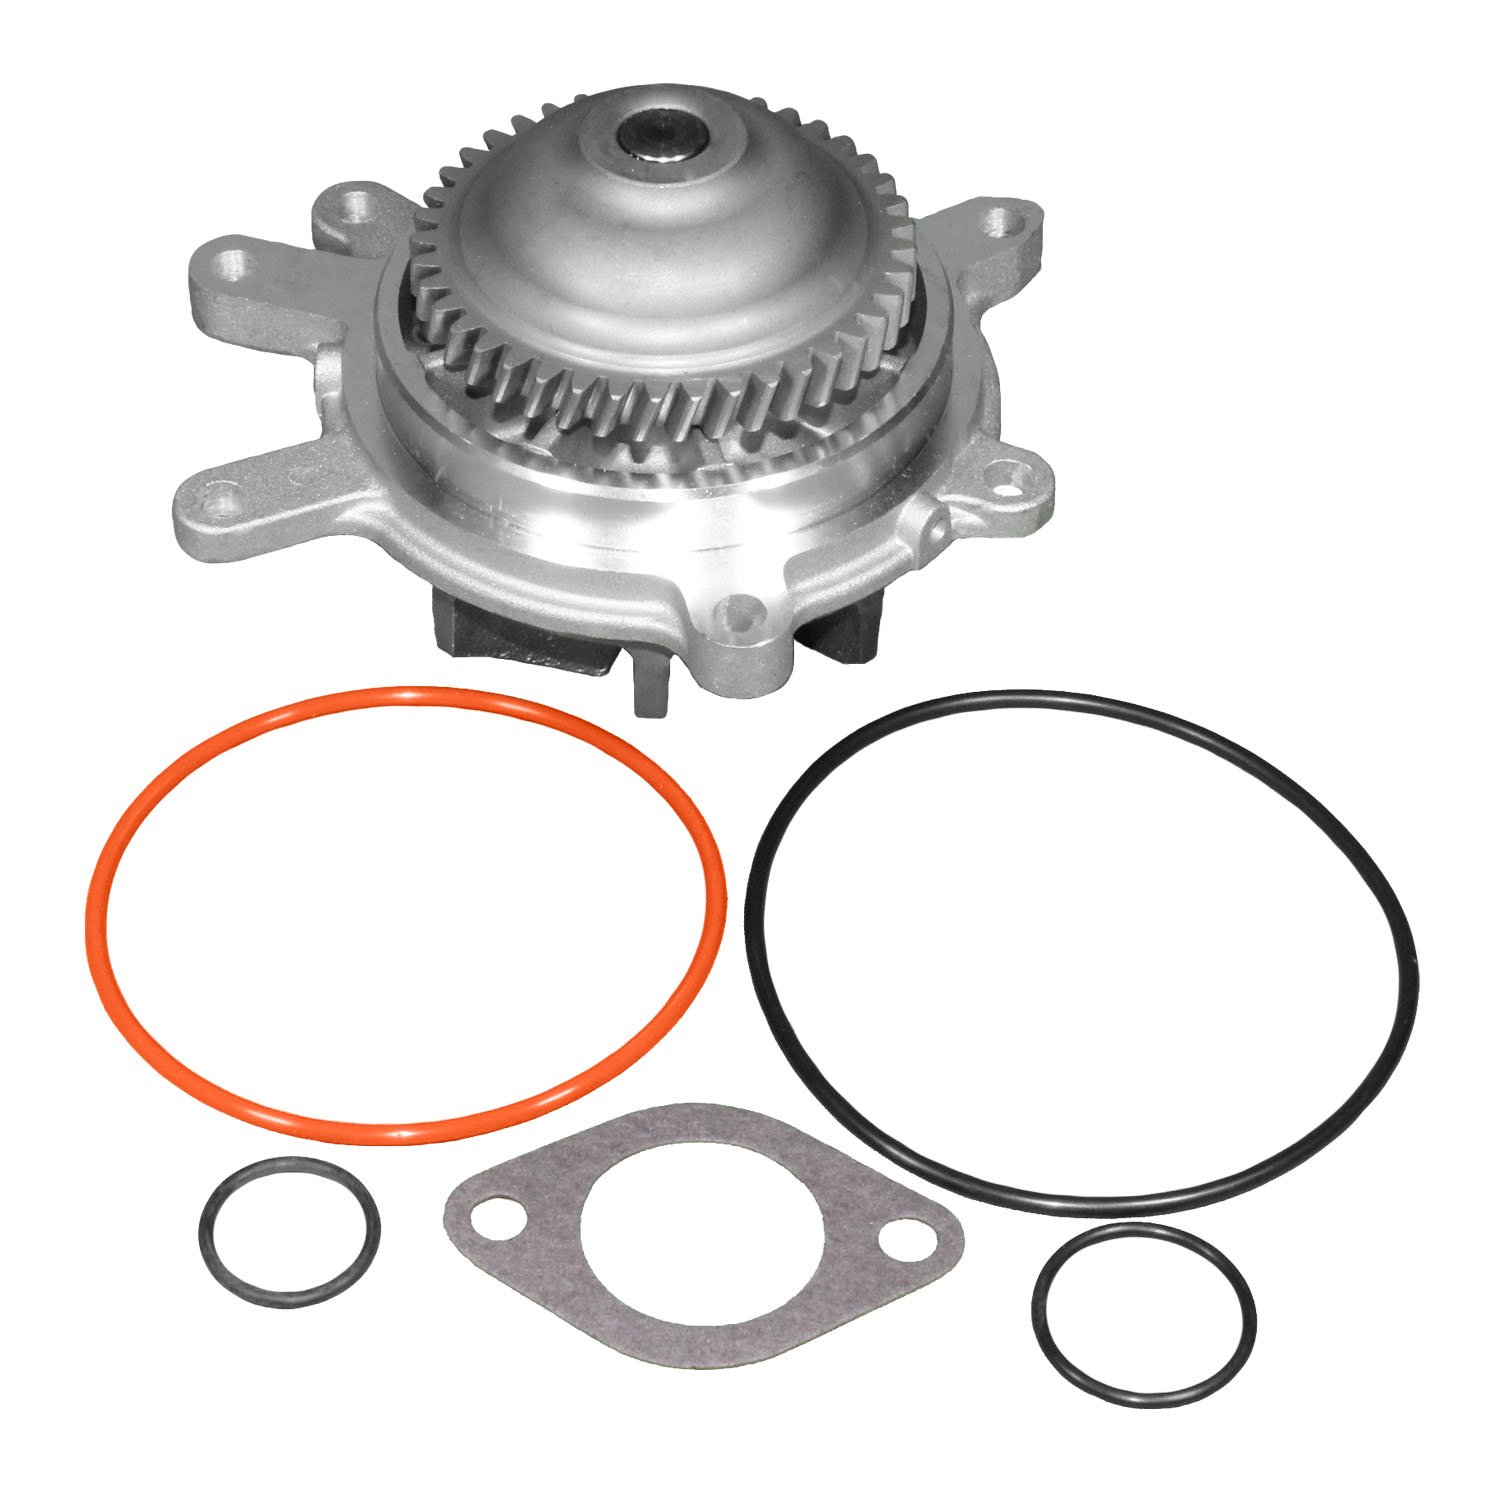 Tecoom 251-713 Professional Water Pump Assambly with with Thermostat Inlet Housing Seals and Metal Gasket